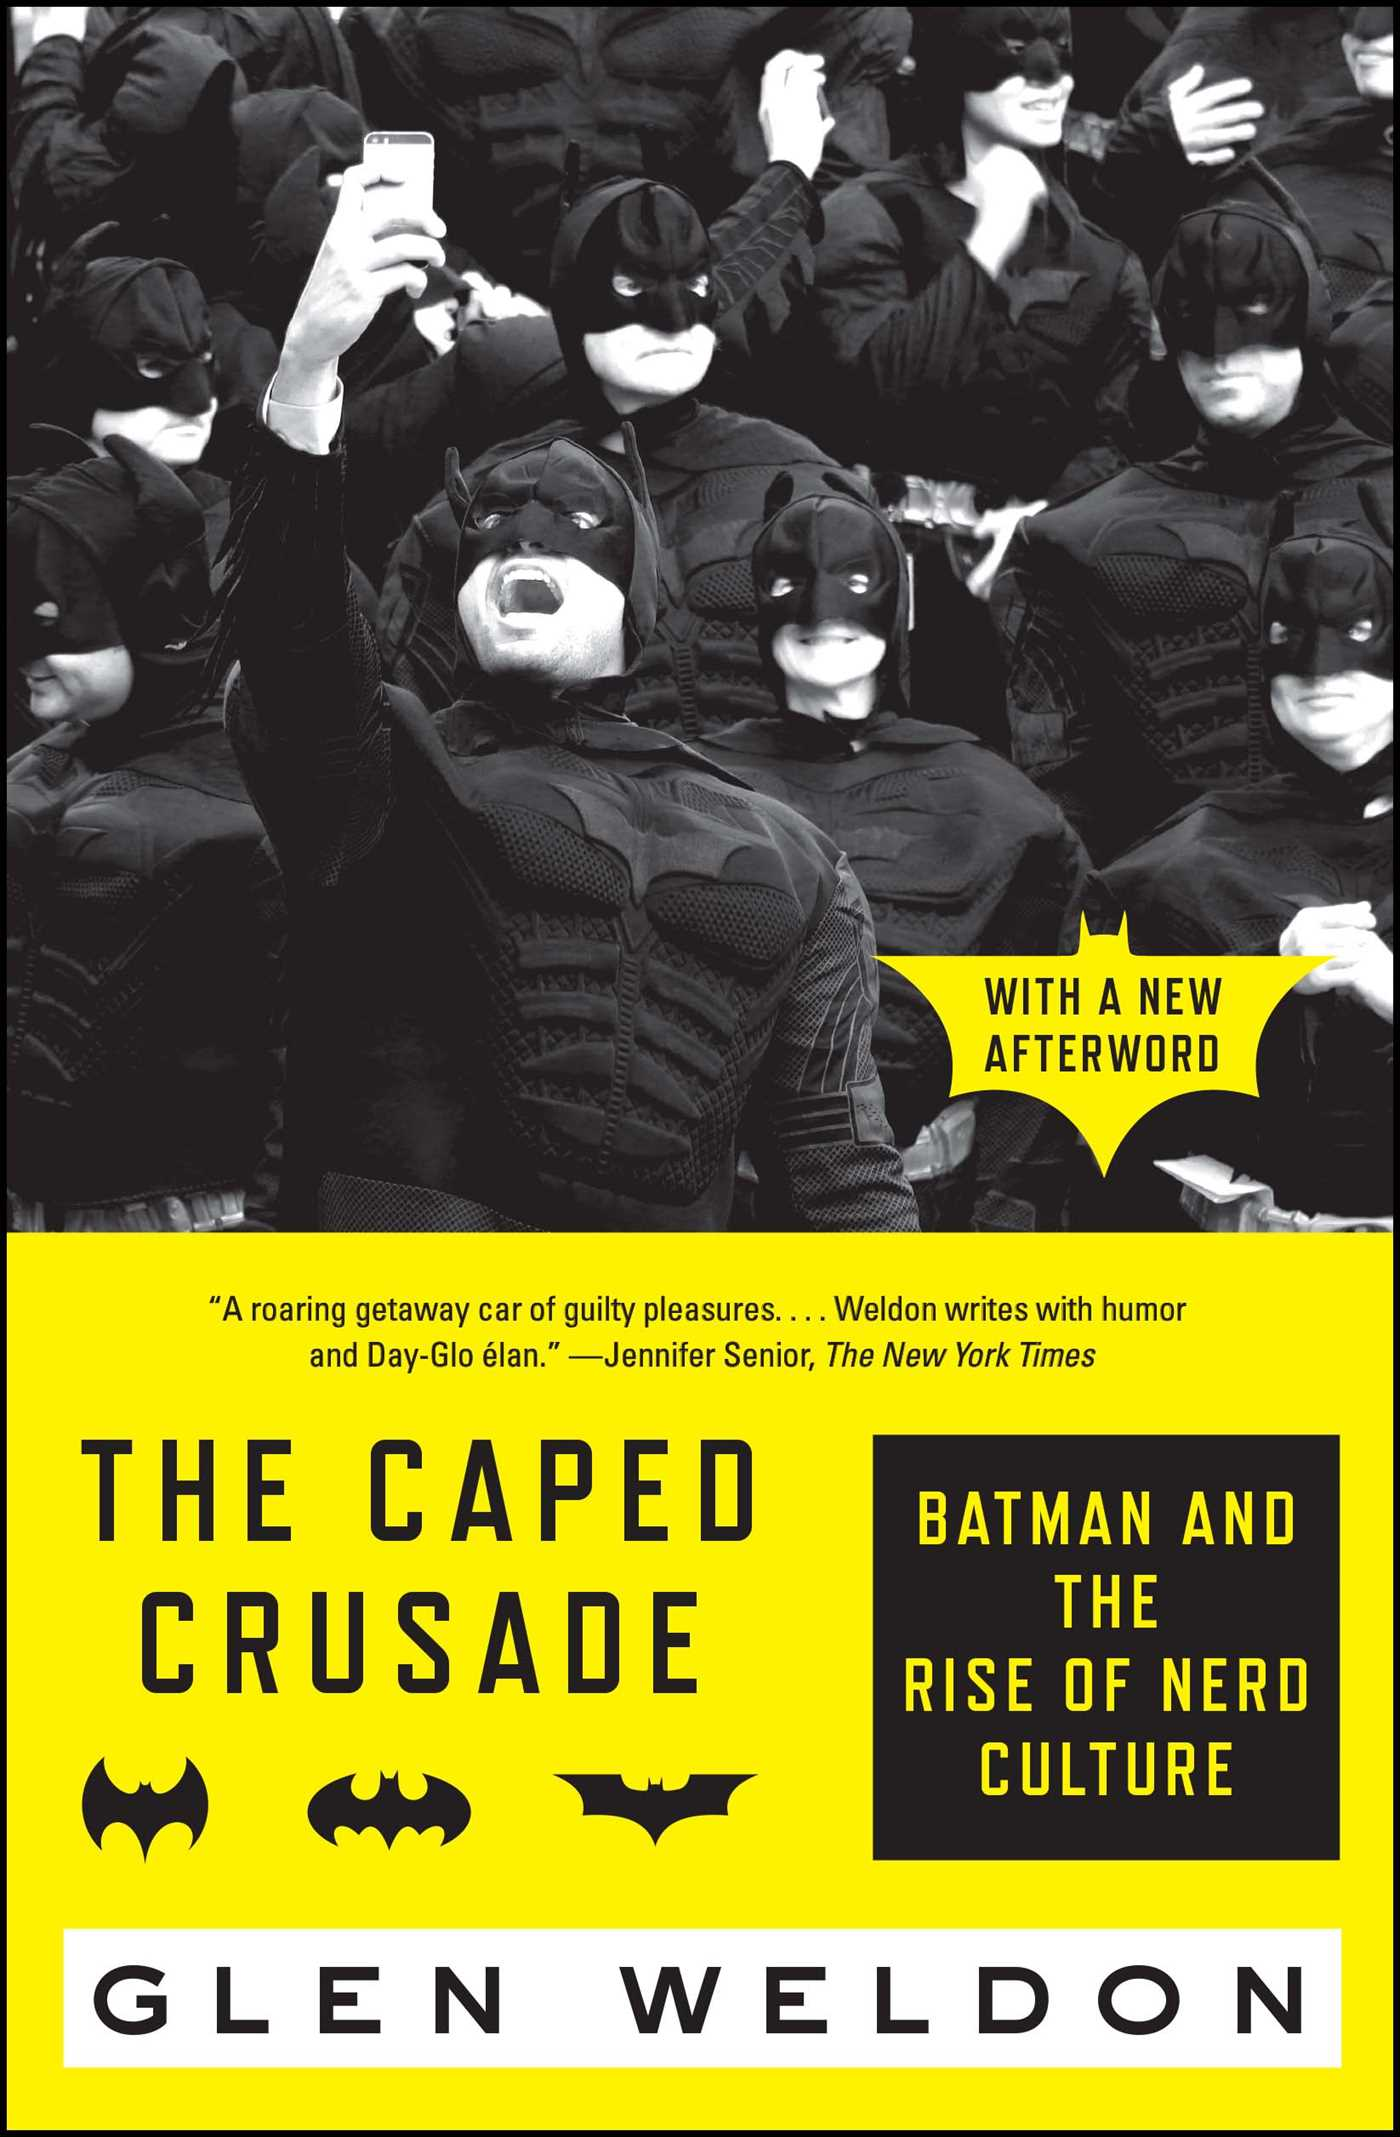 The caped crusade 9781476756738 hr